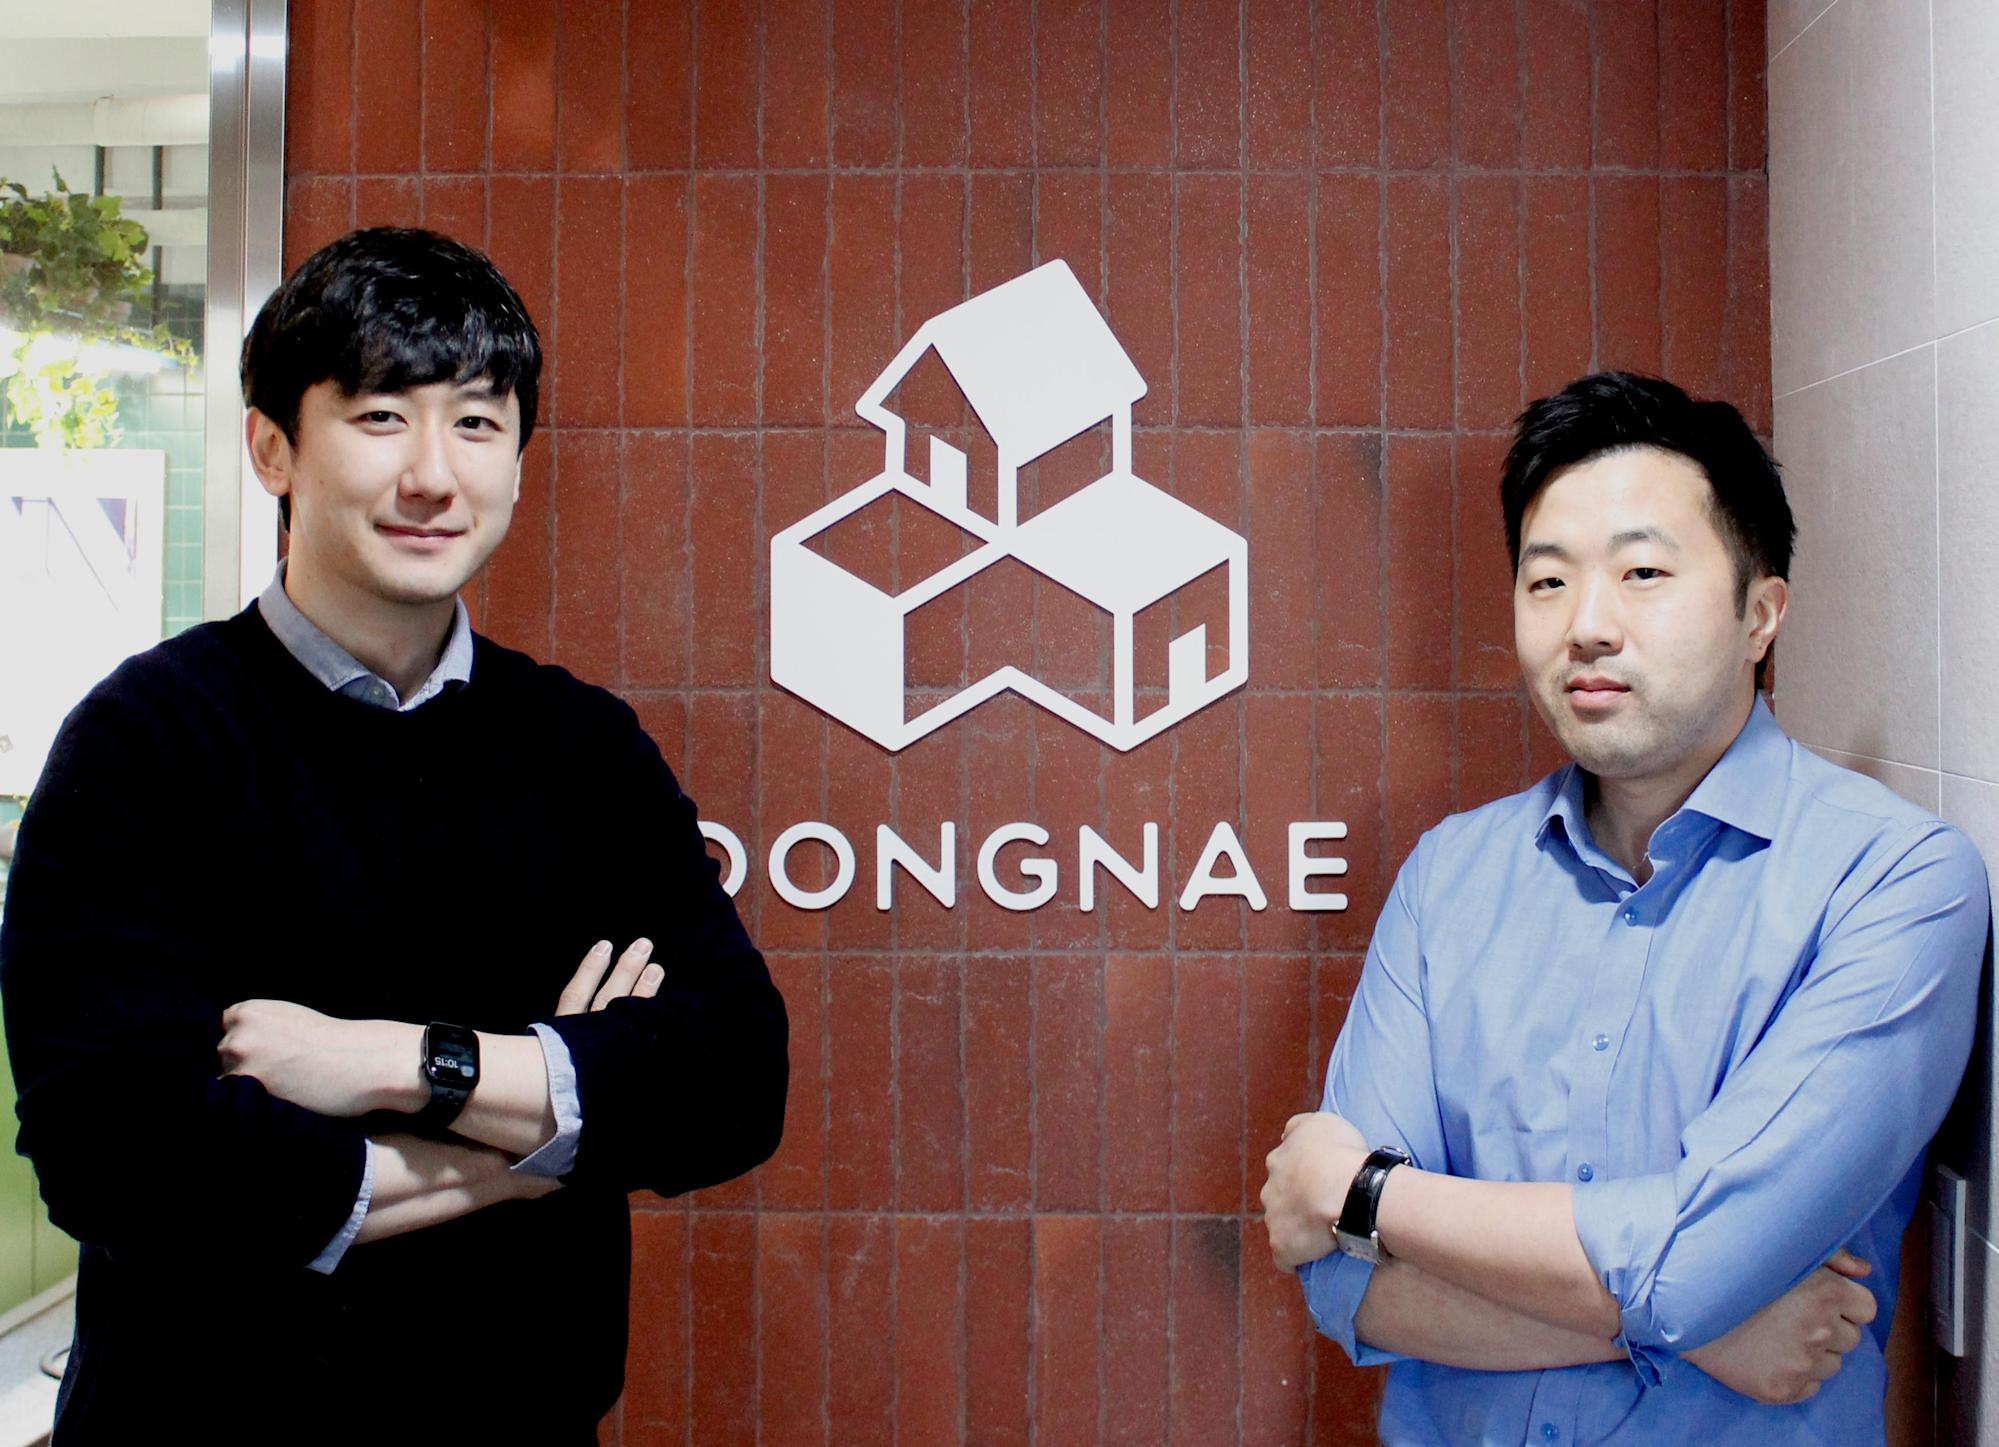 Dongnae raises $4.1 million to digitize real estate in South Korea